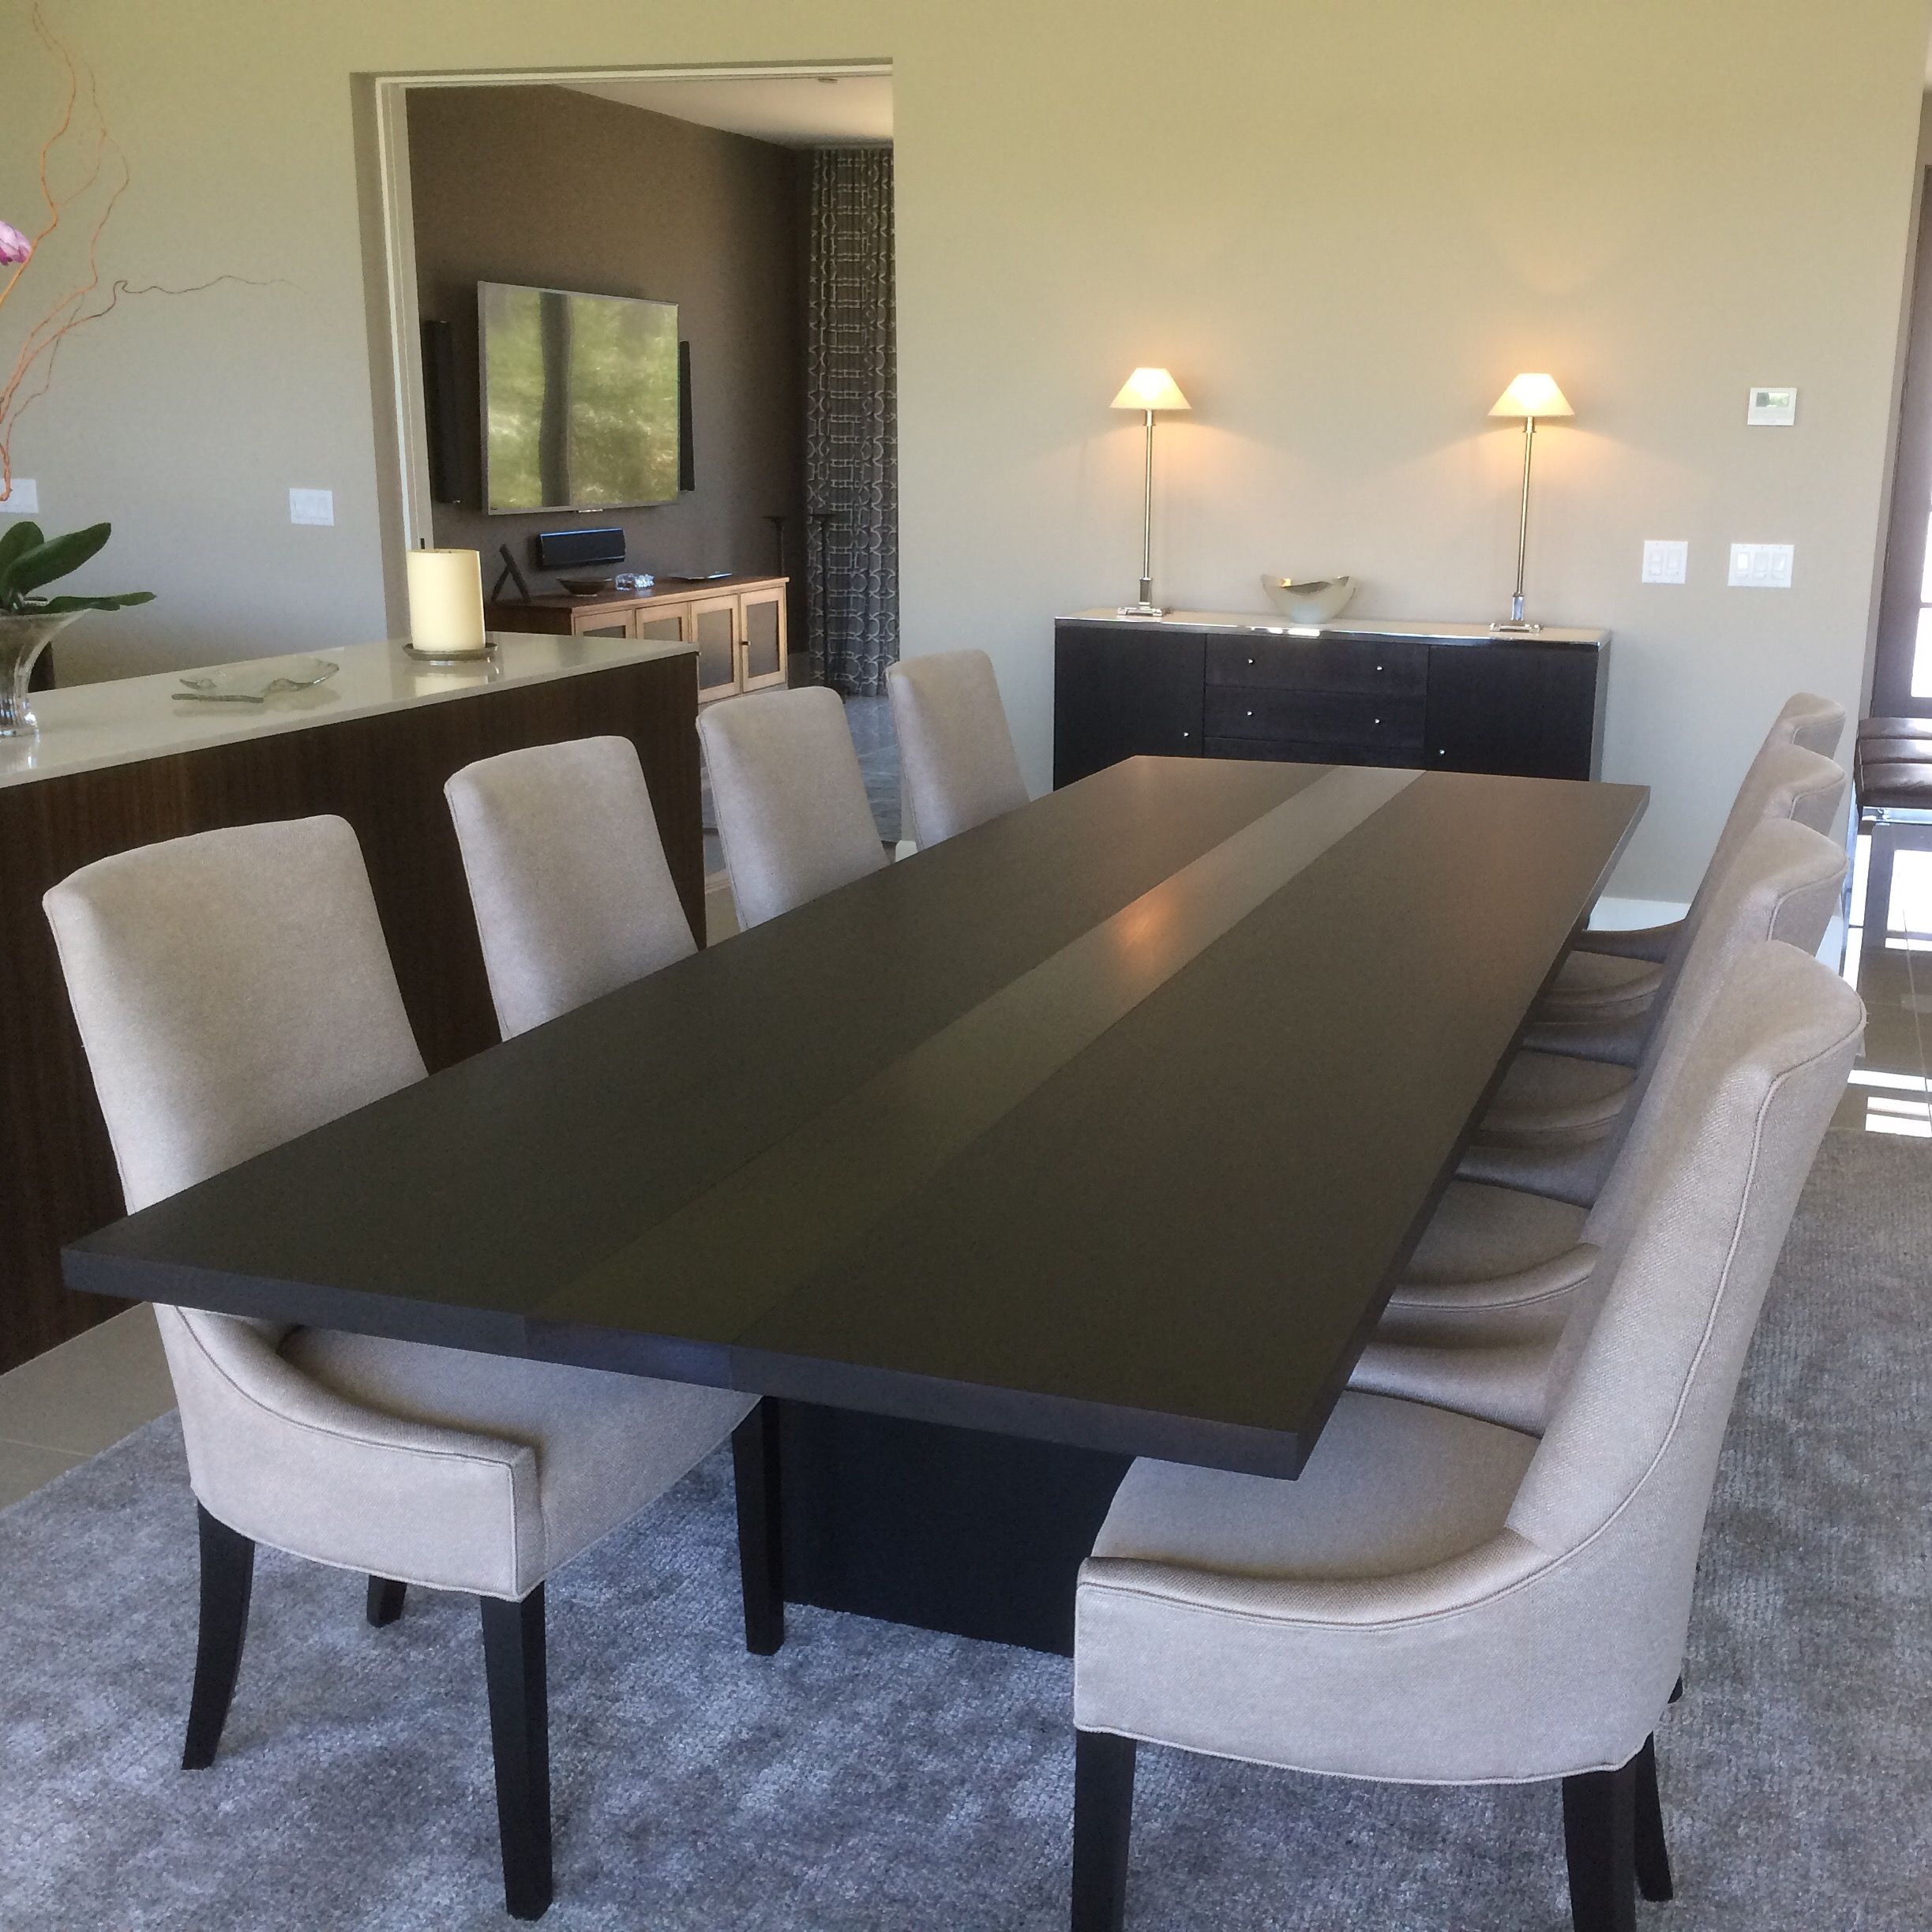 handmade modern dining table by bedre woodworking. Black Bedroom Furniture Sets. Home Design Ideas